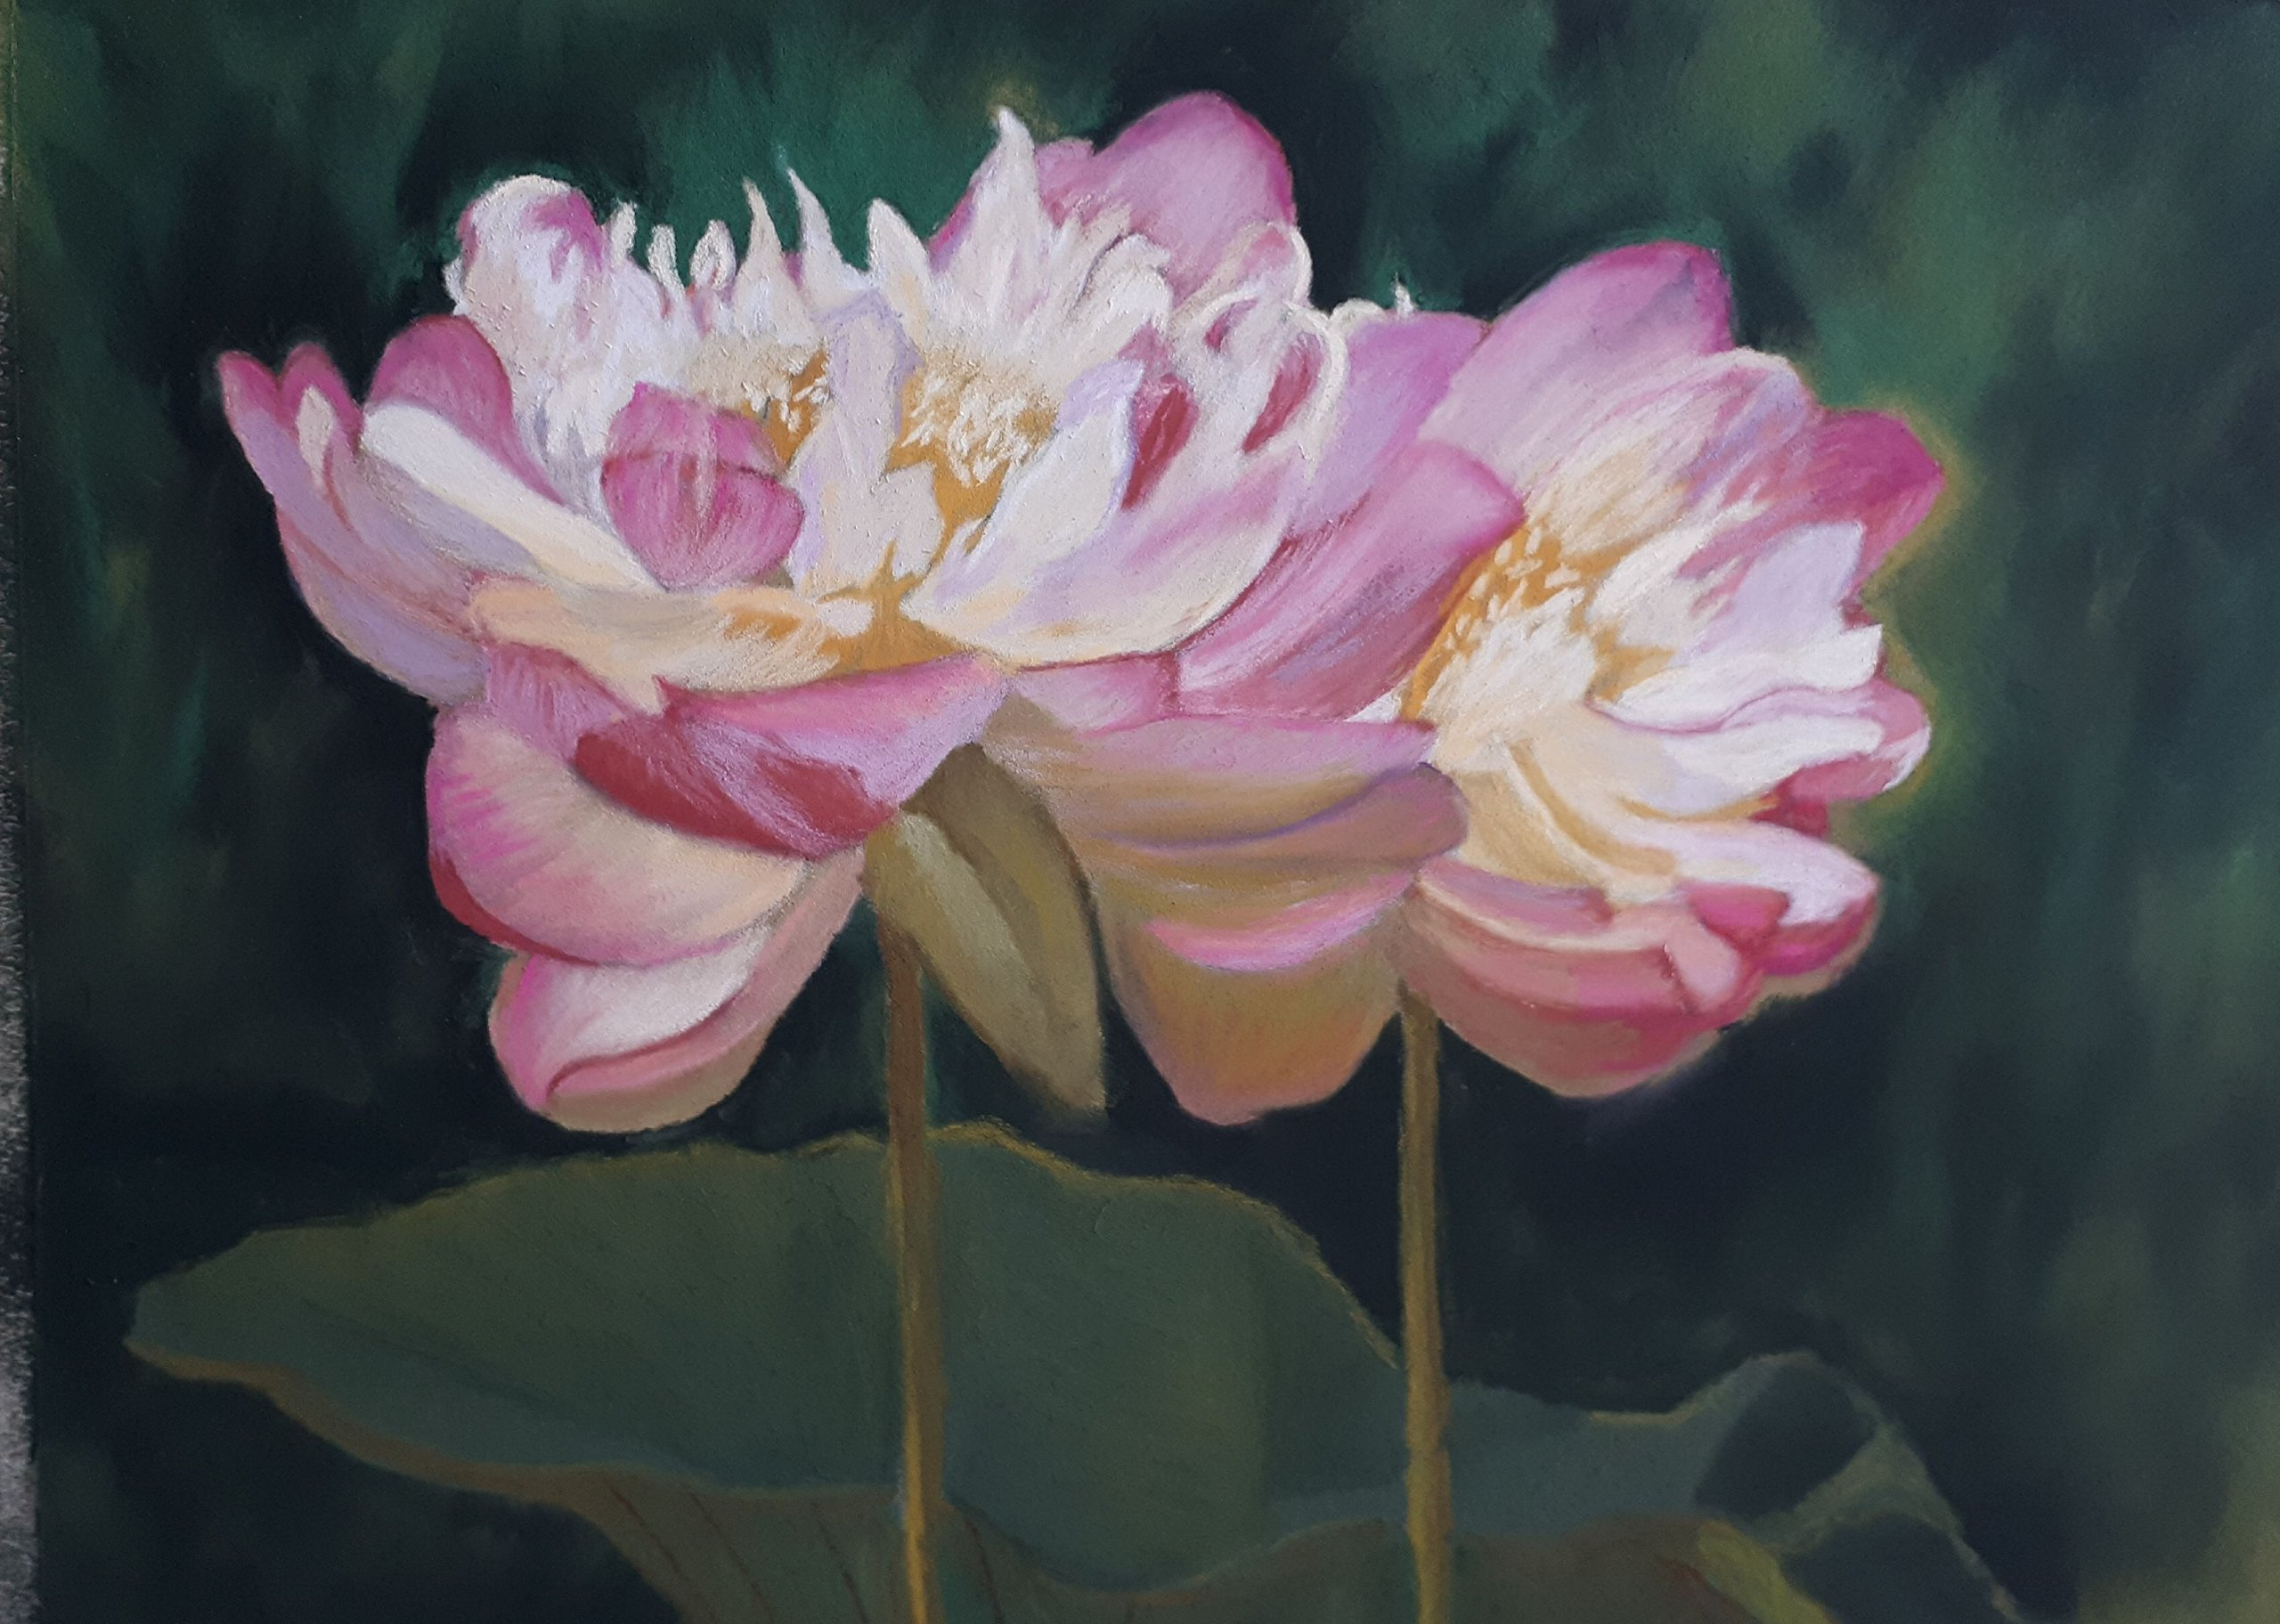 Lotus Flowers at the Montreal Botanical Gardens by